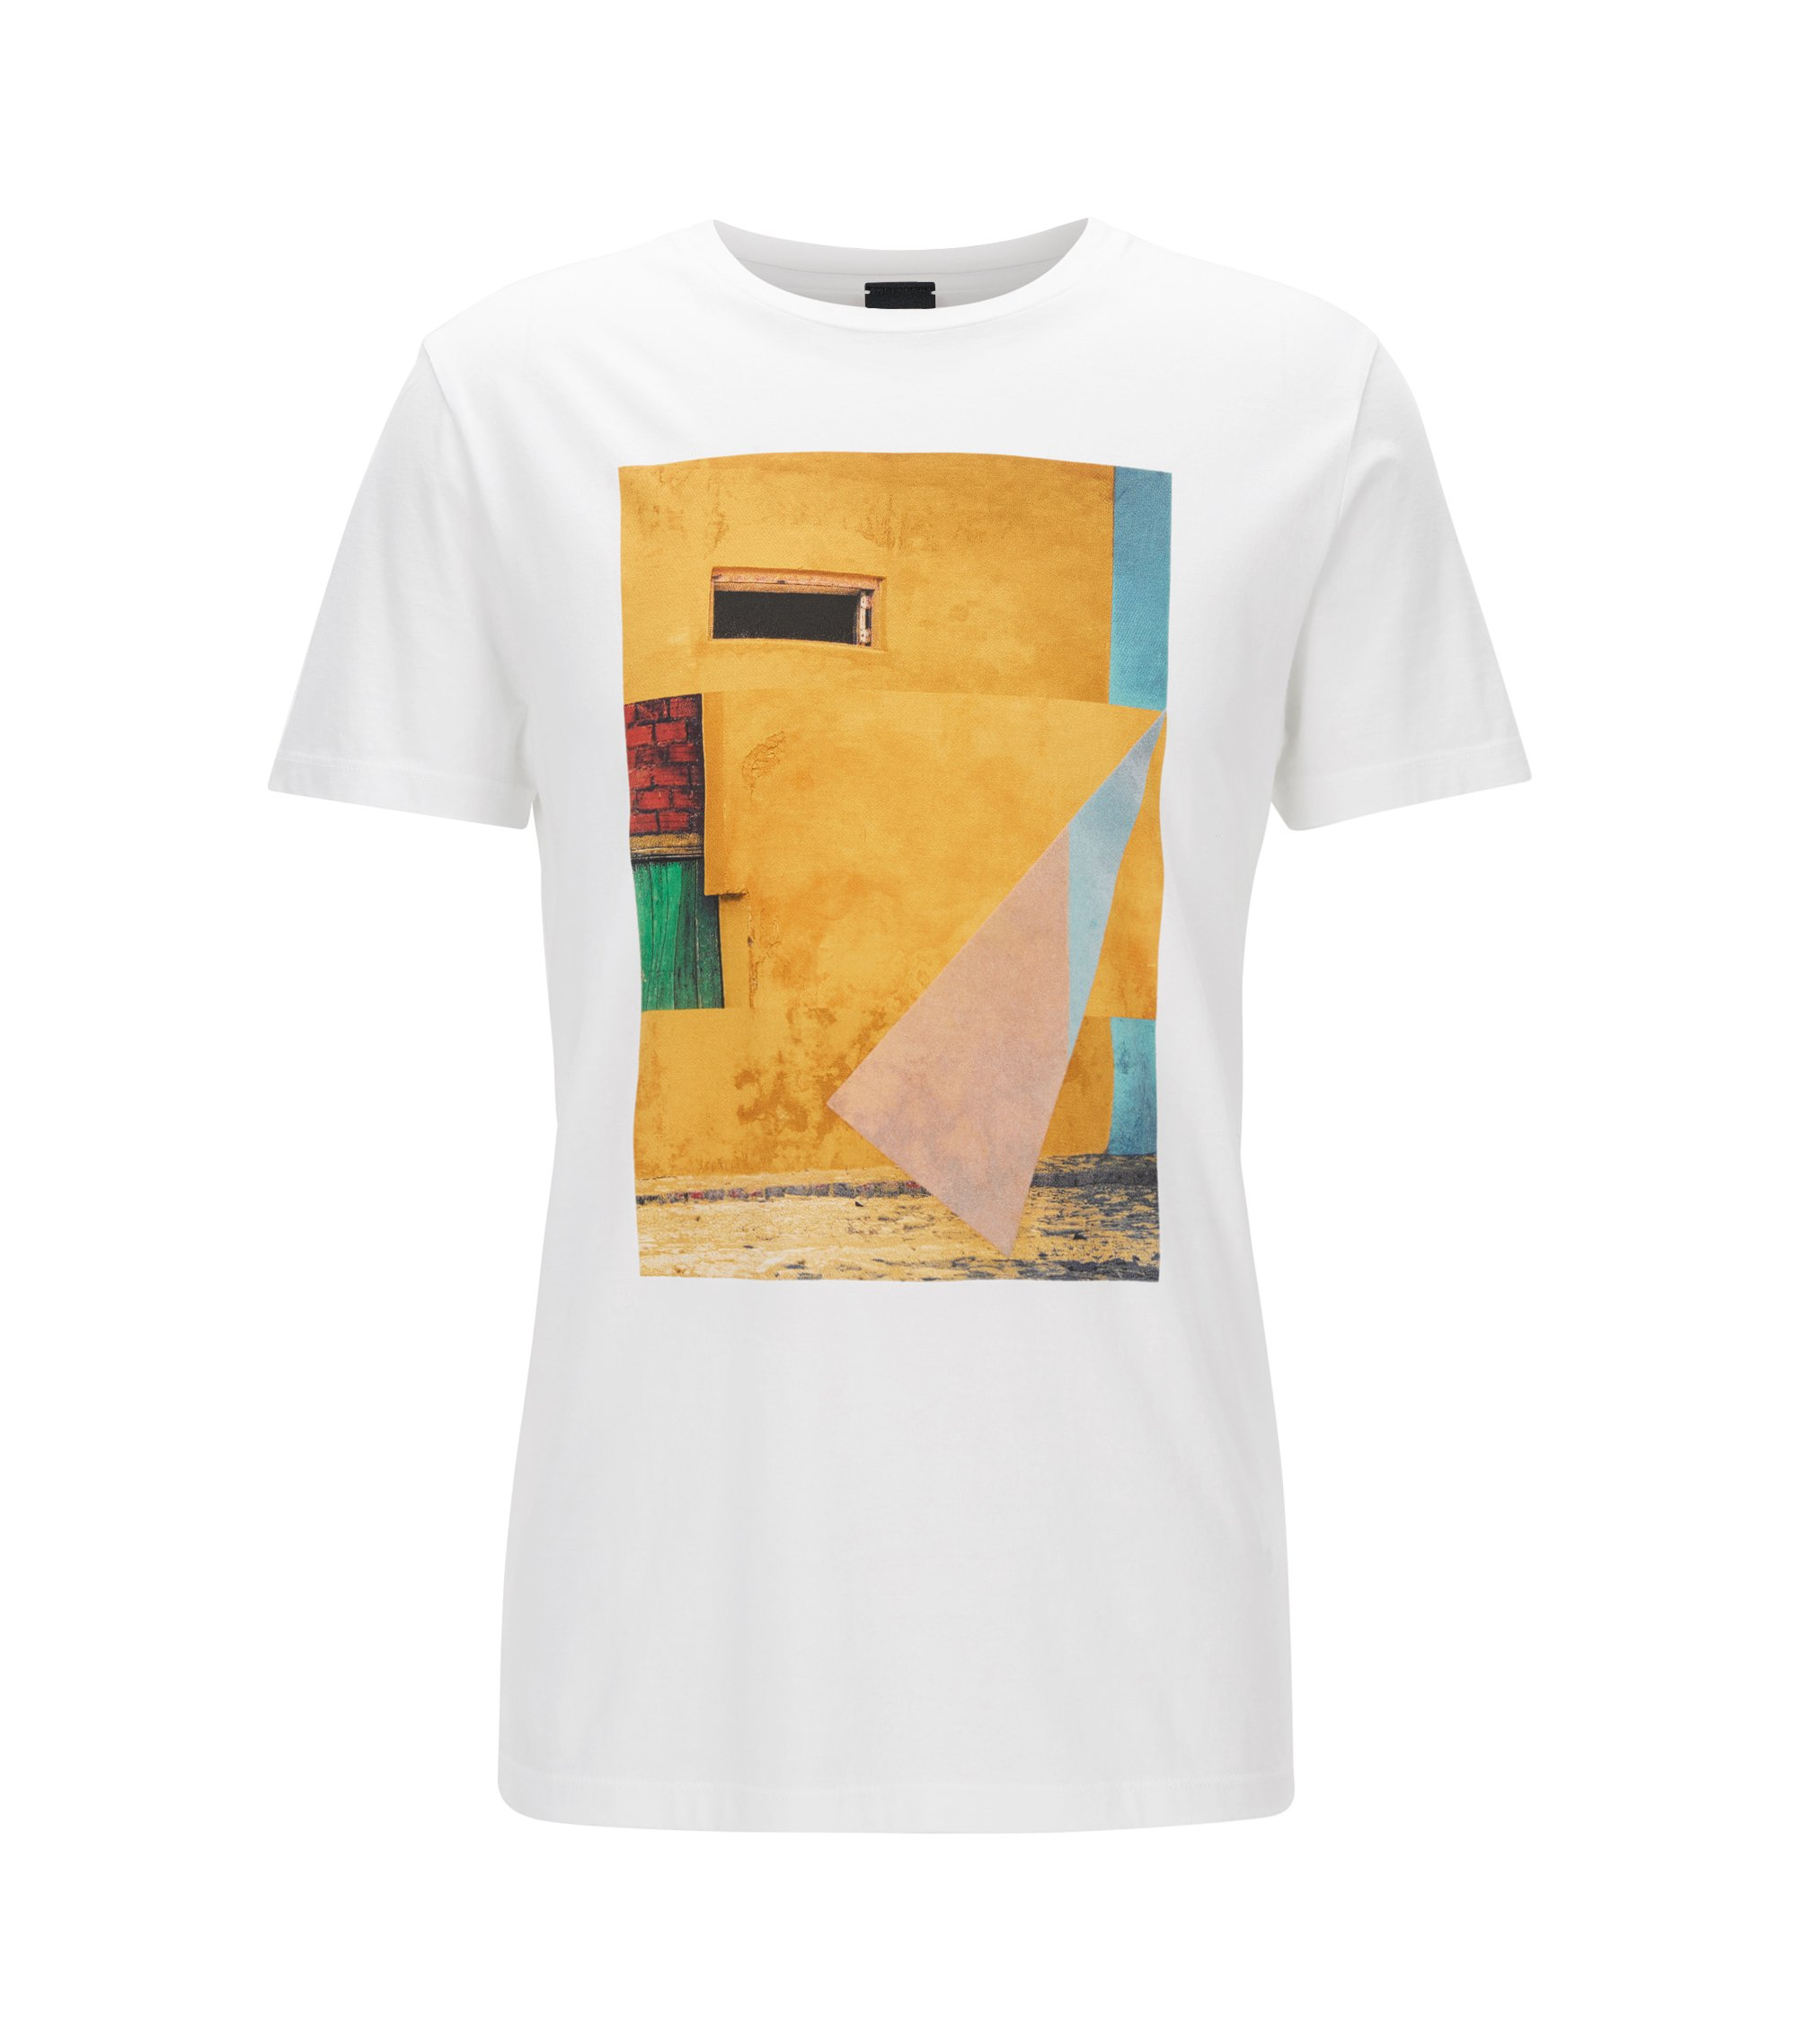 Cuba-Print Cotton Graphic T-Shirt | Turbulent, White